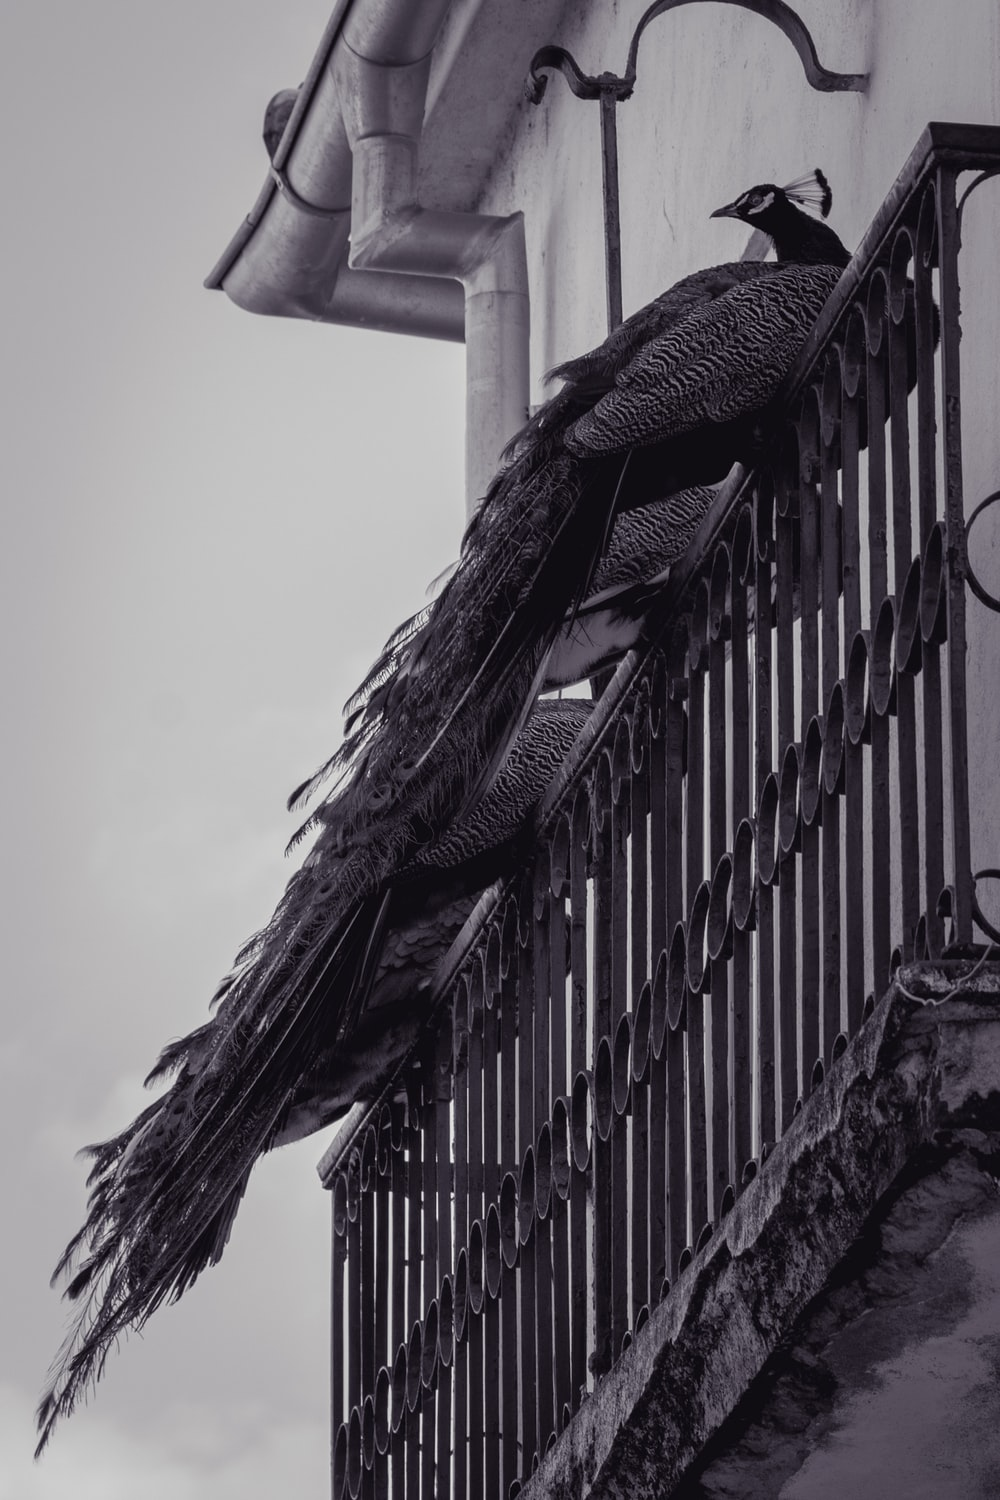 grayscale photo of bird on top of metal fence